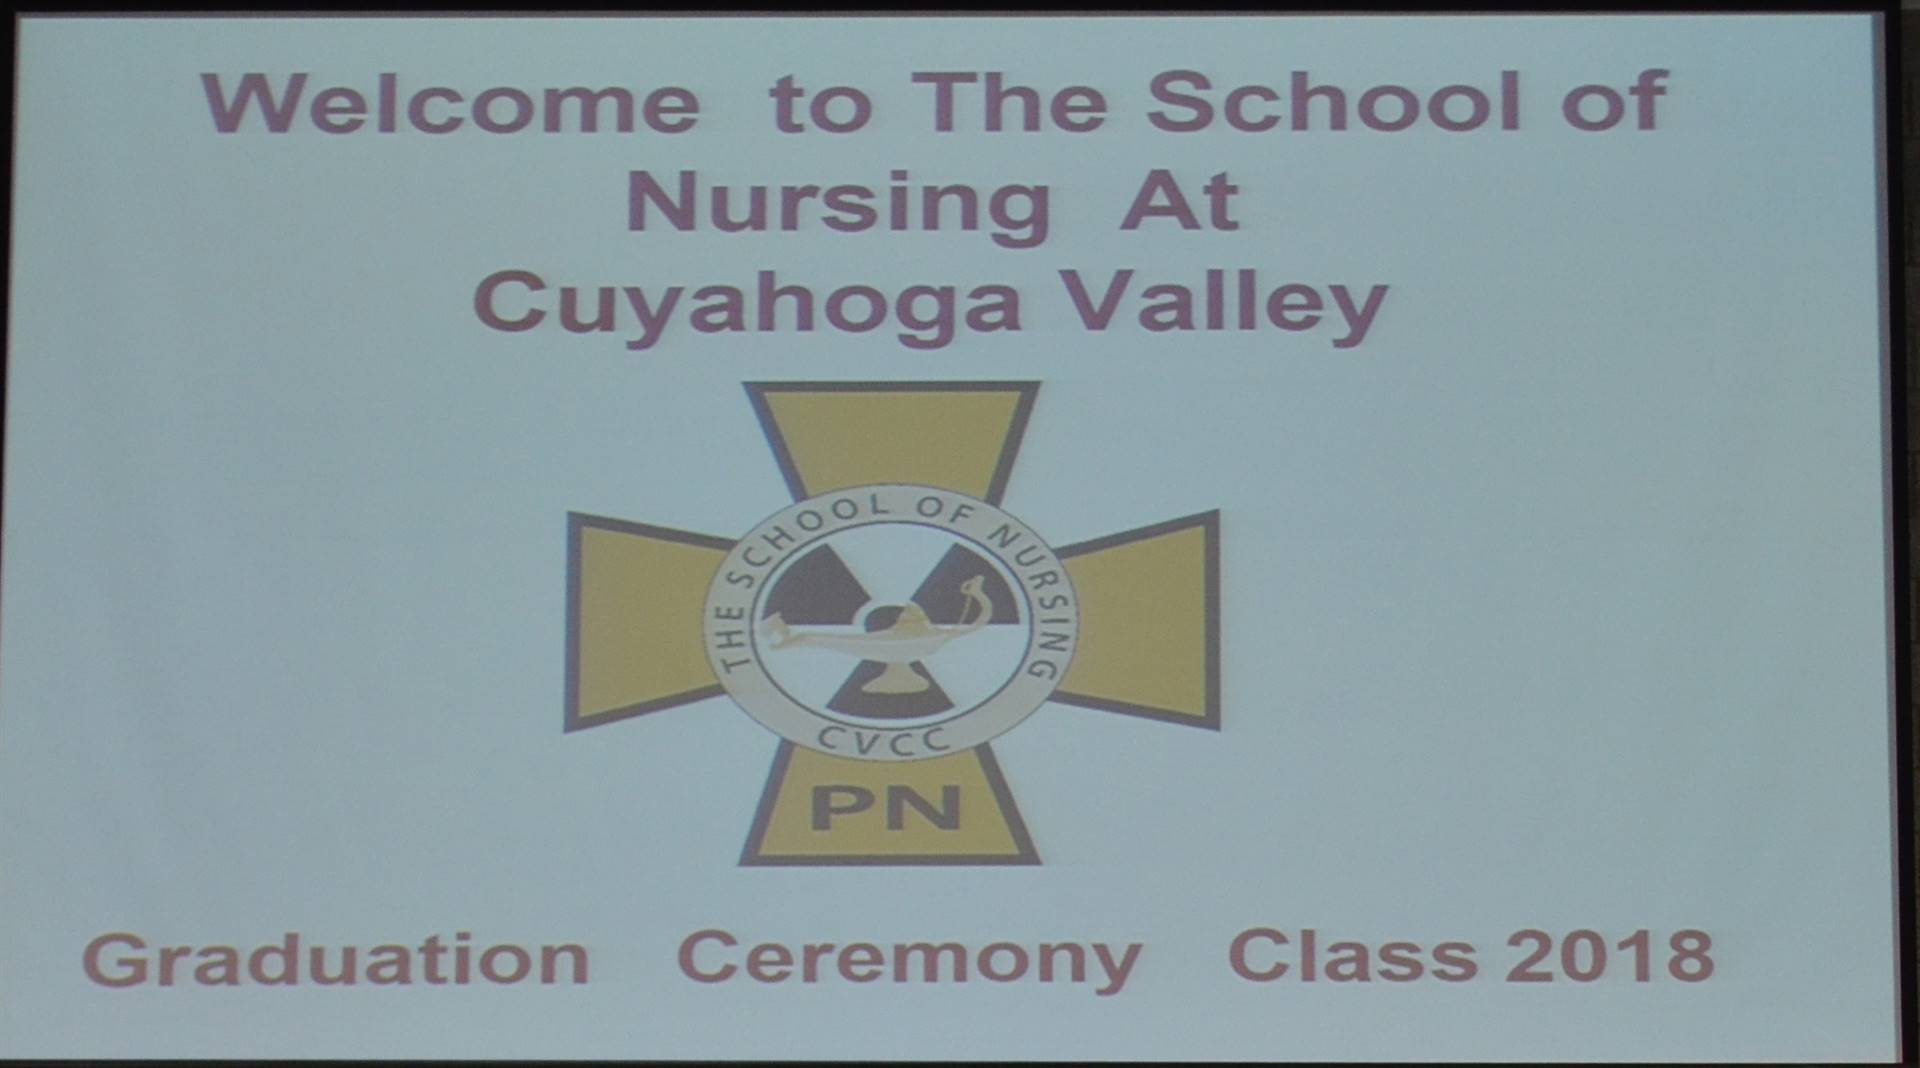 Welcome to The School of Nursing at Cuyahoga Valley Graduation Ceremony Class of 2018